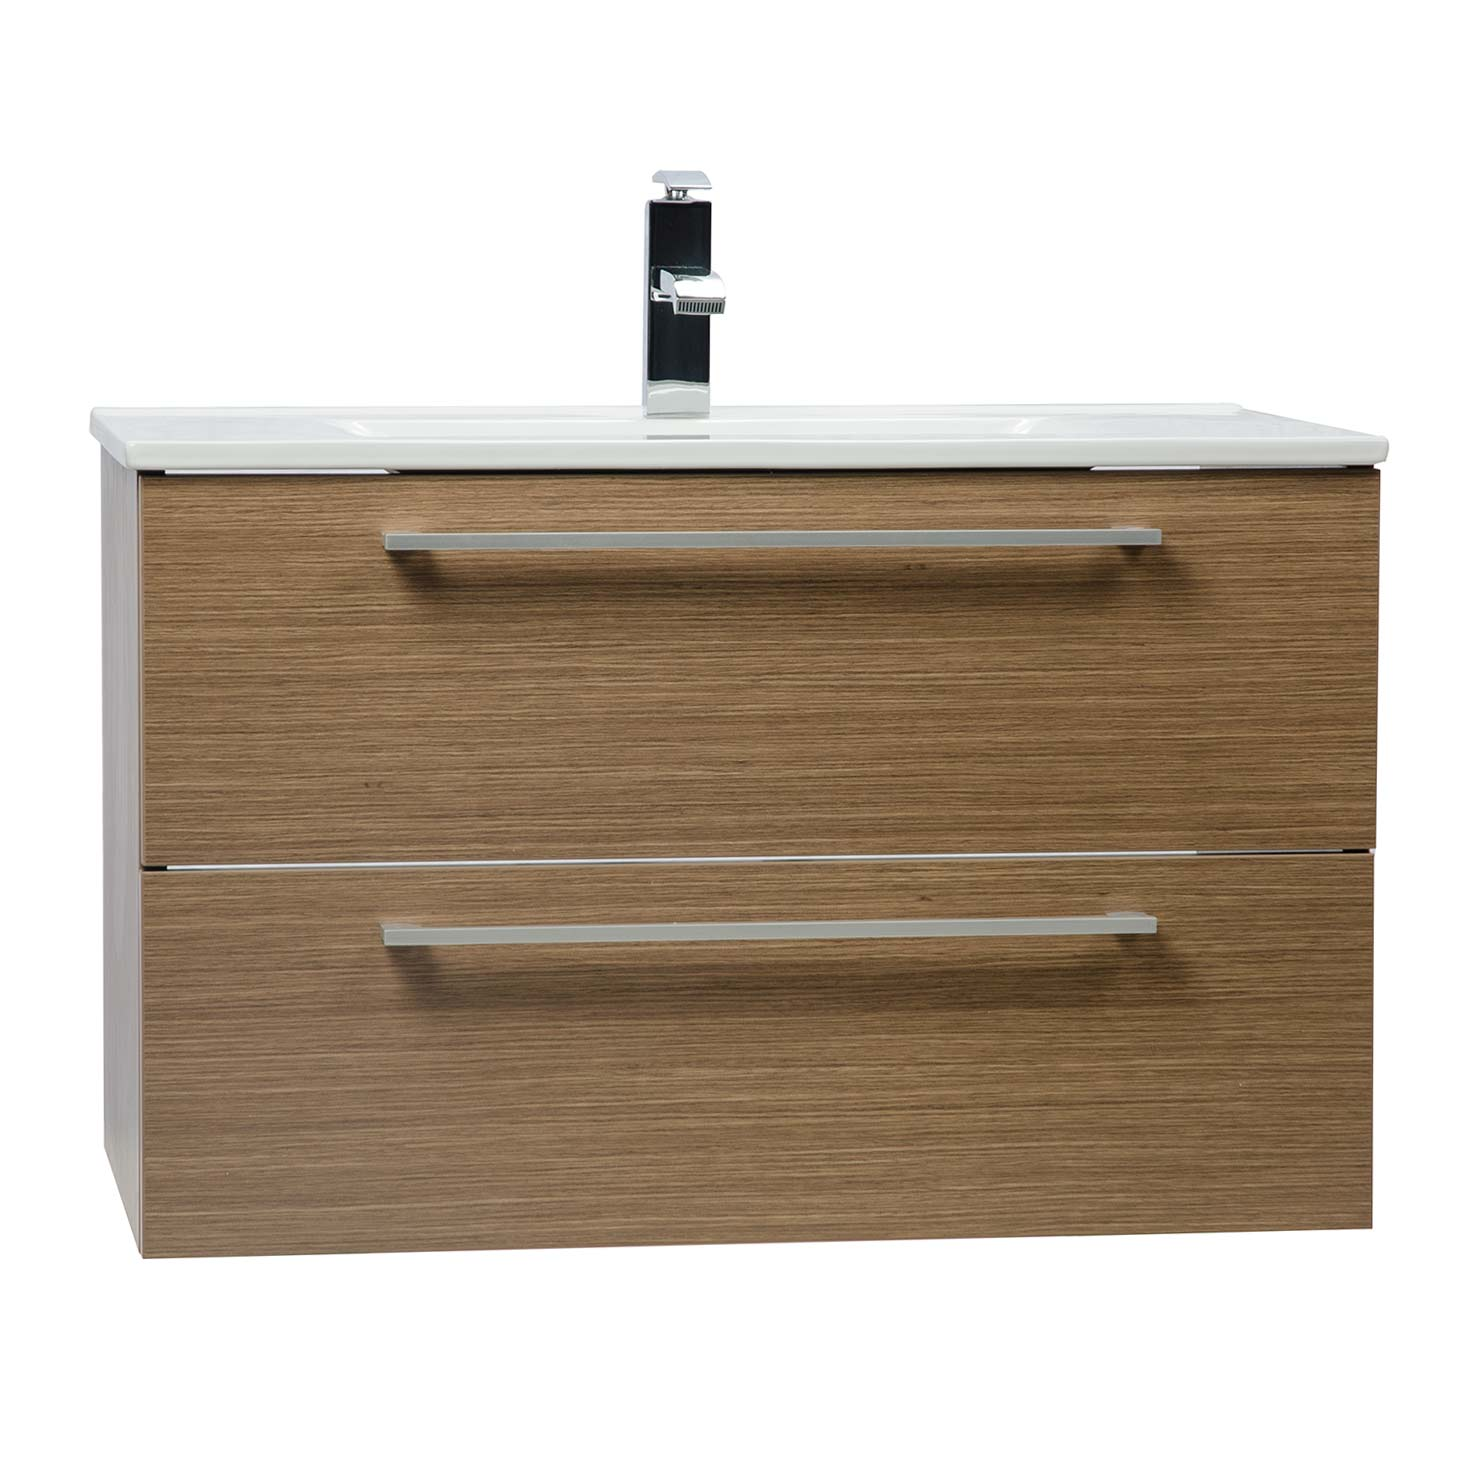 Bathroom Vanity Lighting Concept For Modern Houses: Buy 32 Inch Wall-Mount Modern Bathroom Vanity In Light Oak